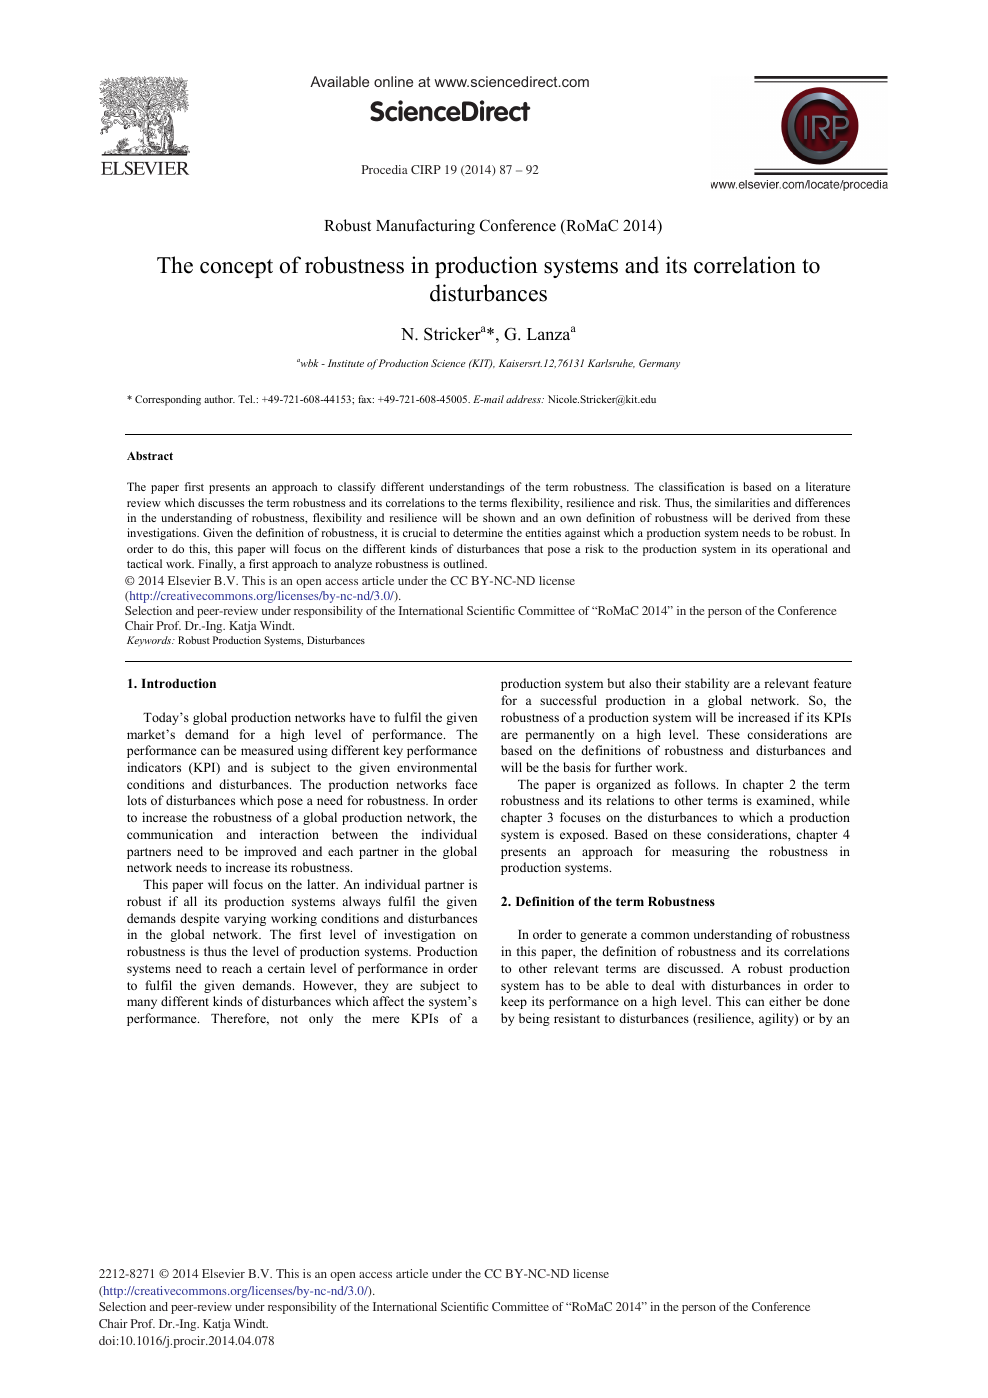 The Concept Of Robustness In Production Systems And Its